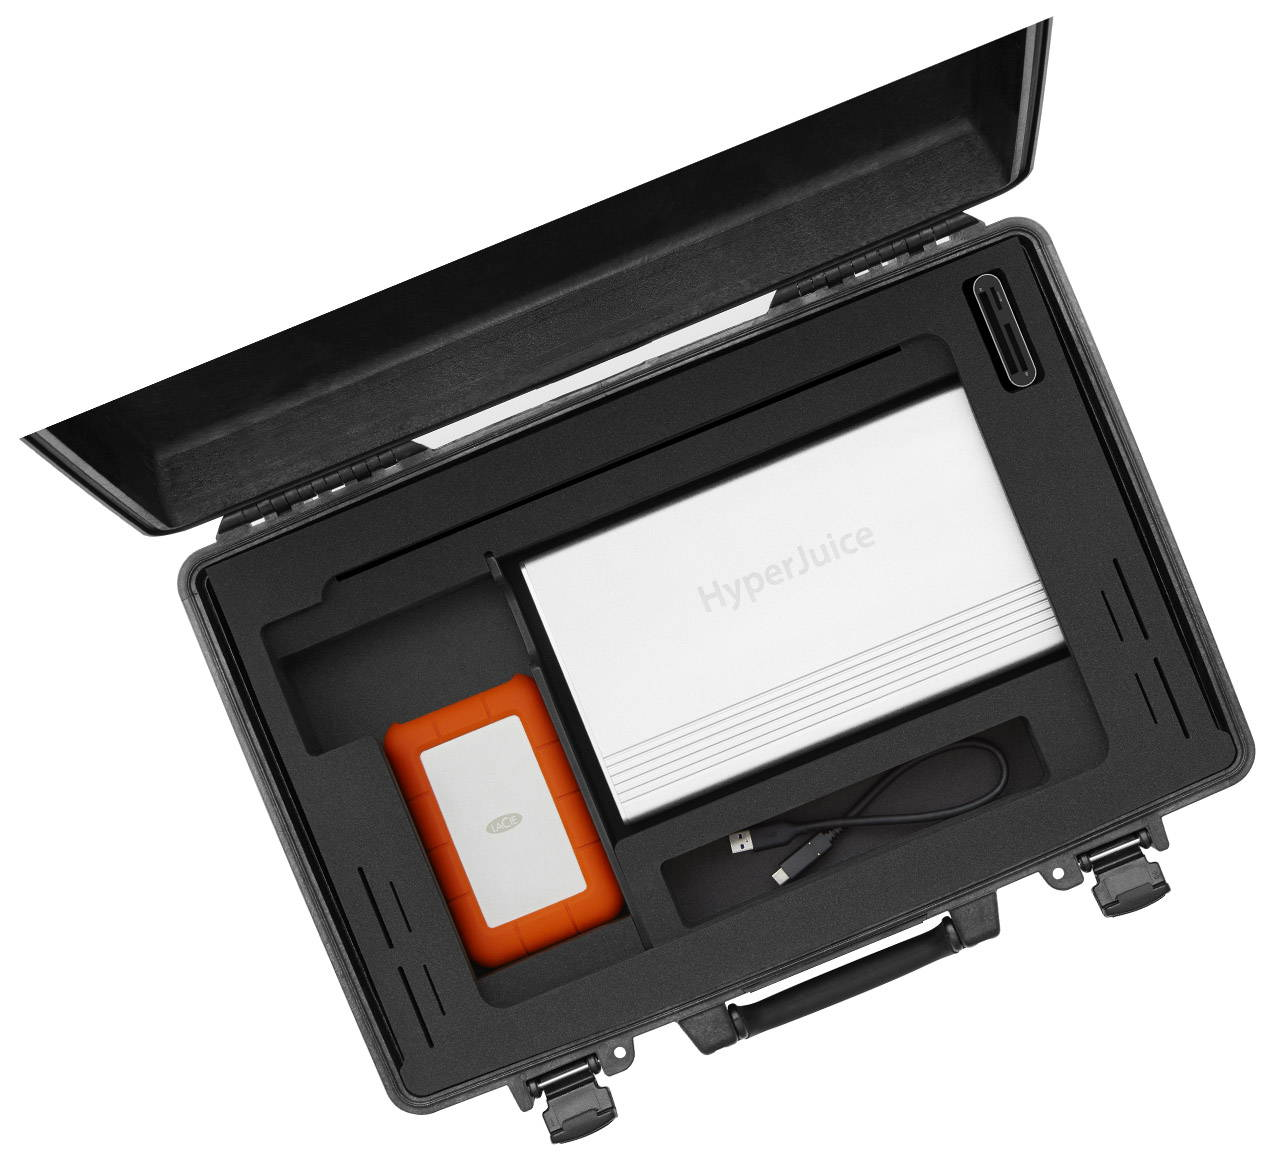 iworkcase digicase open showing inlay design on white